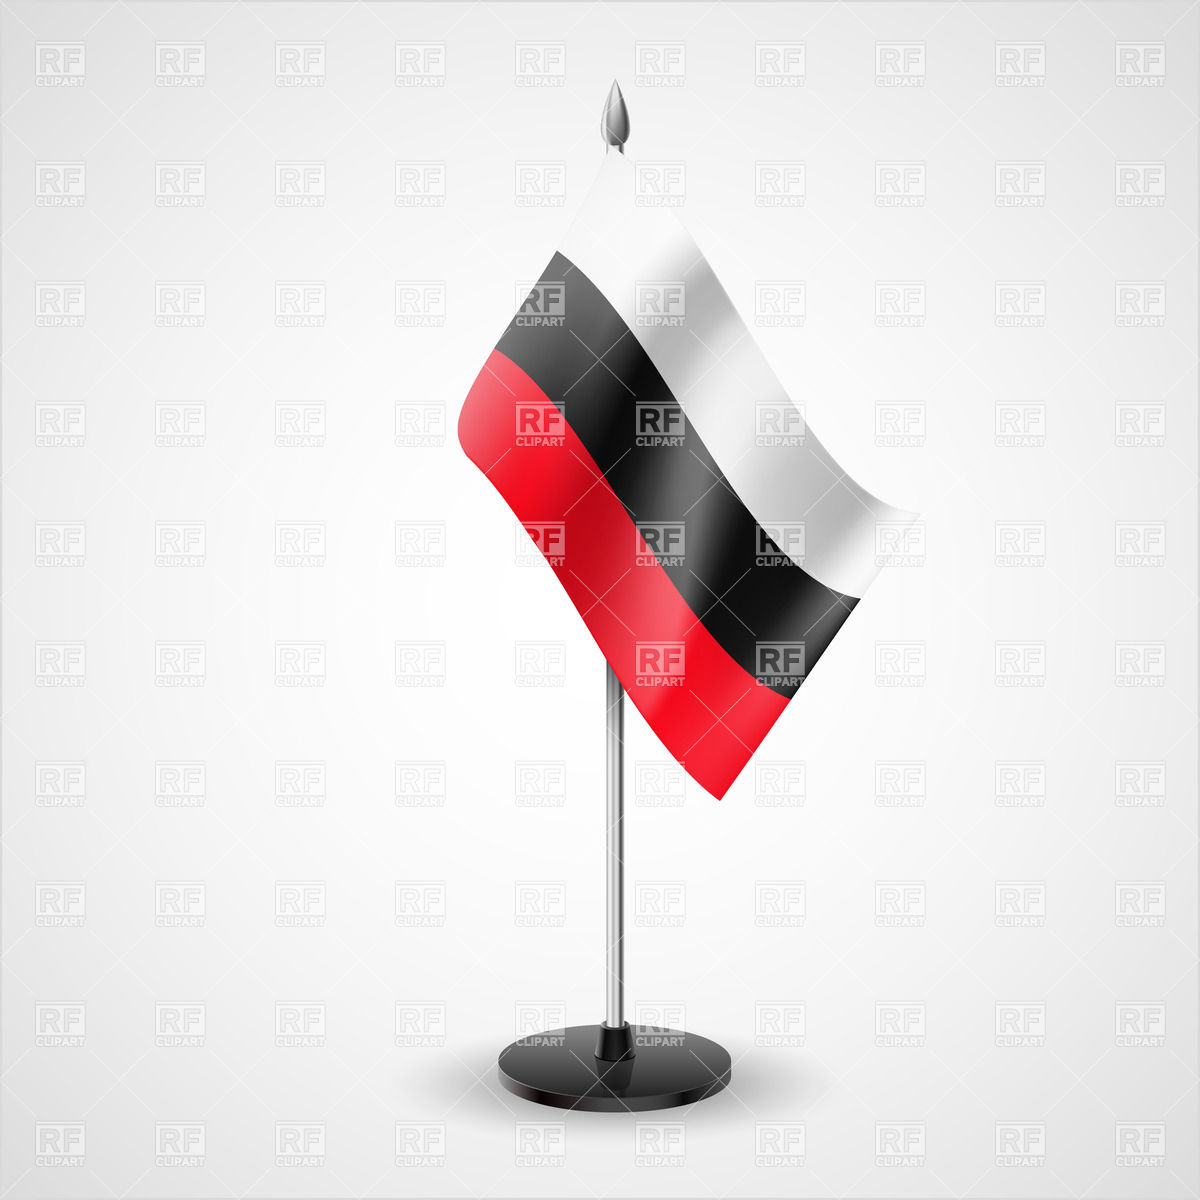 Tricolor table flag of white, black and red horizontal stripes.